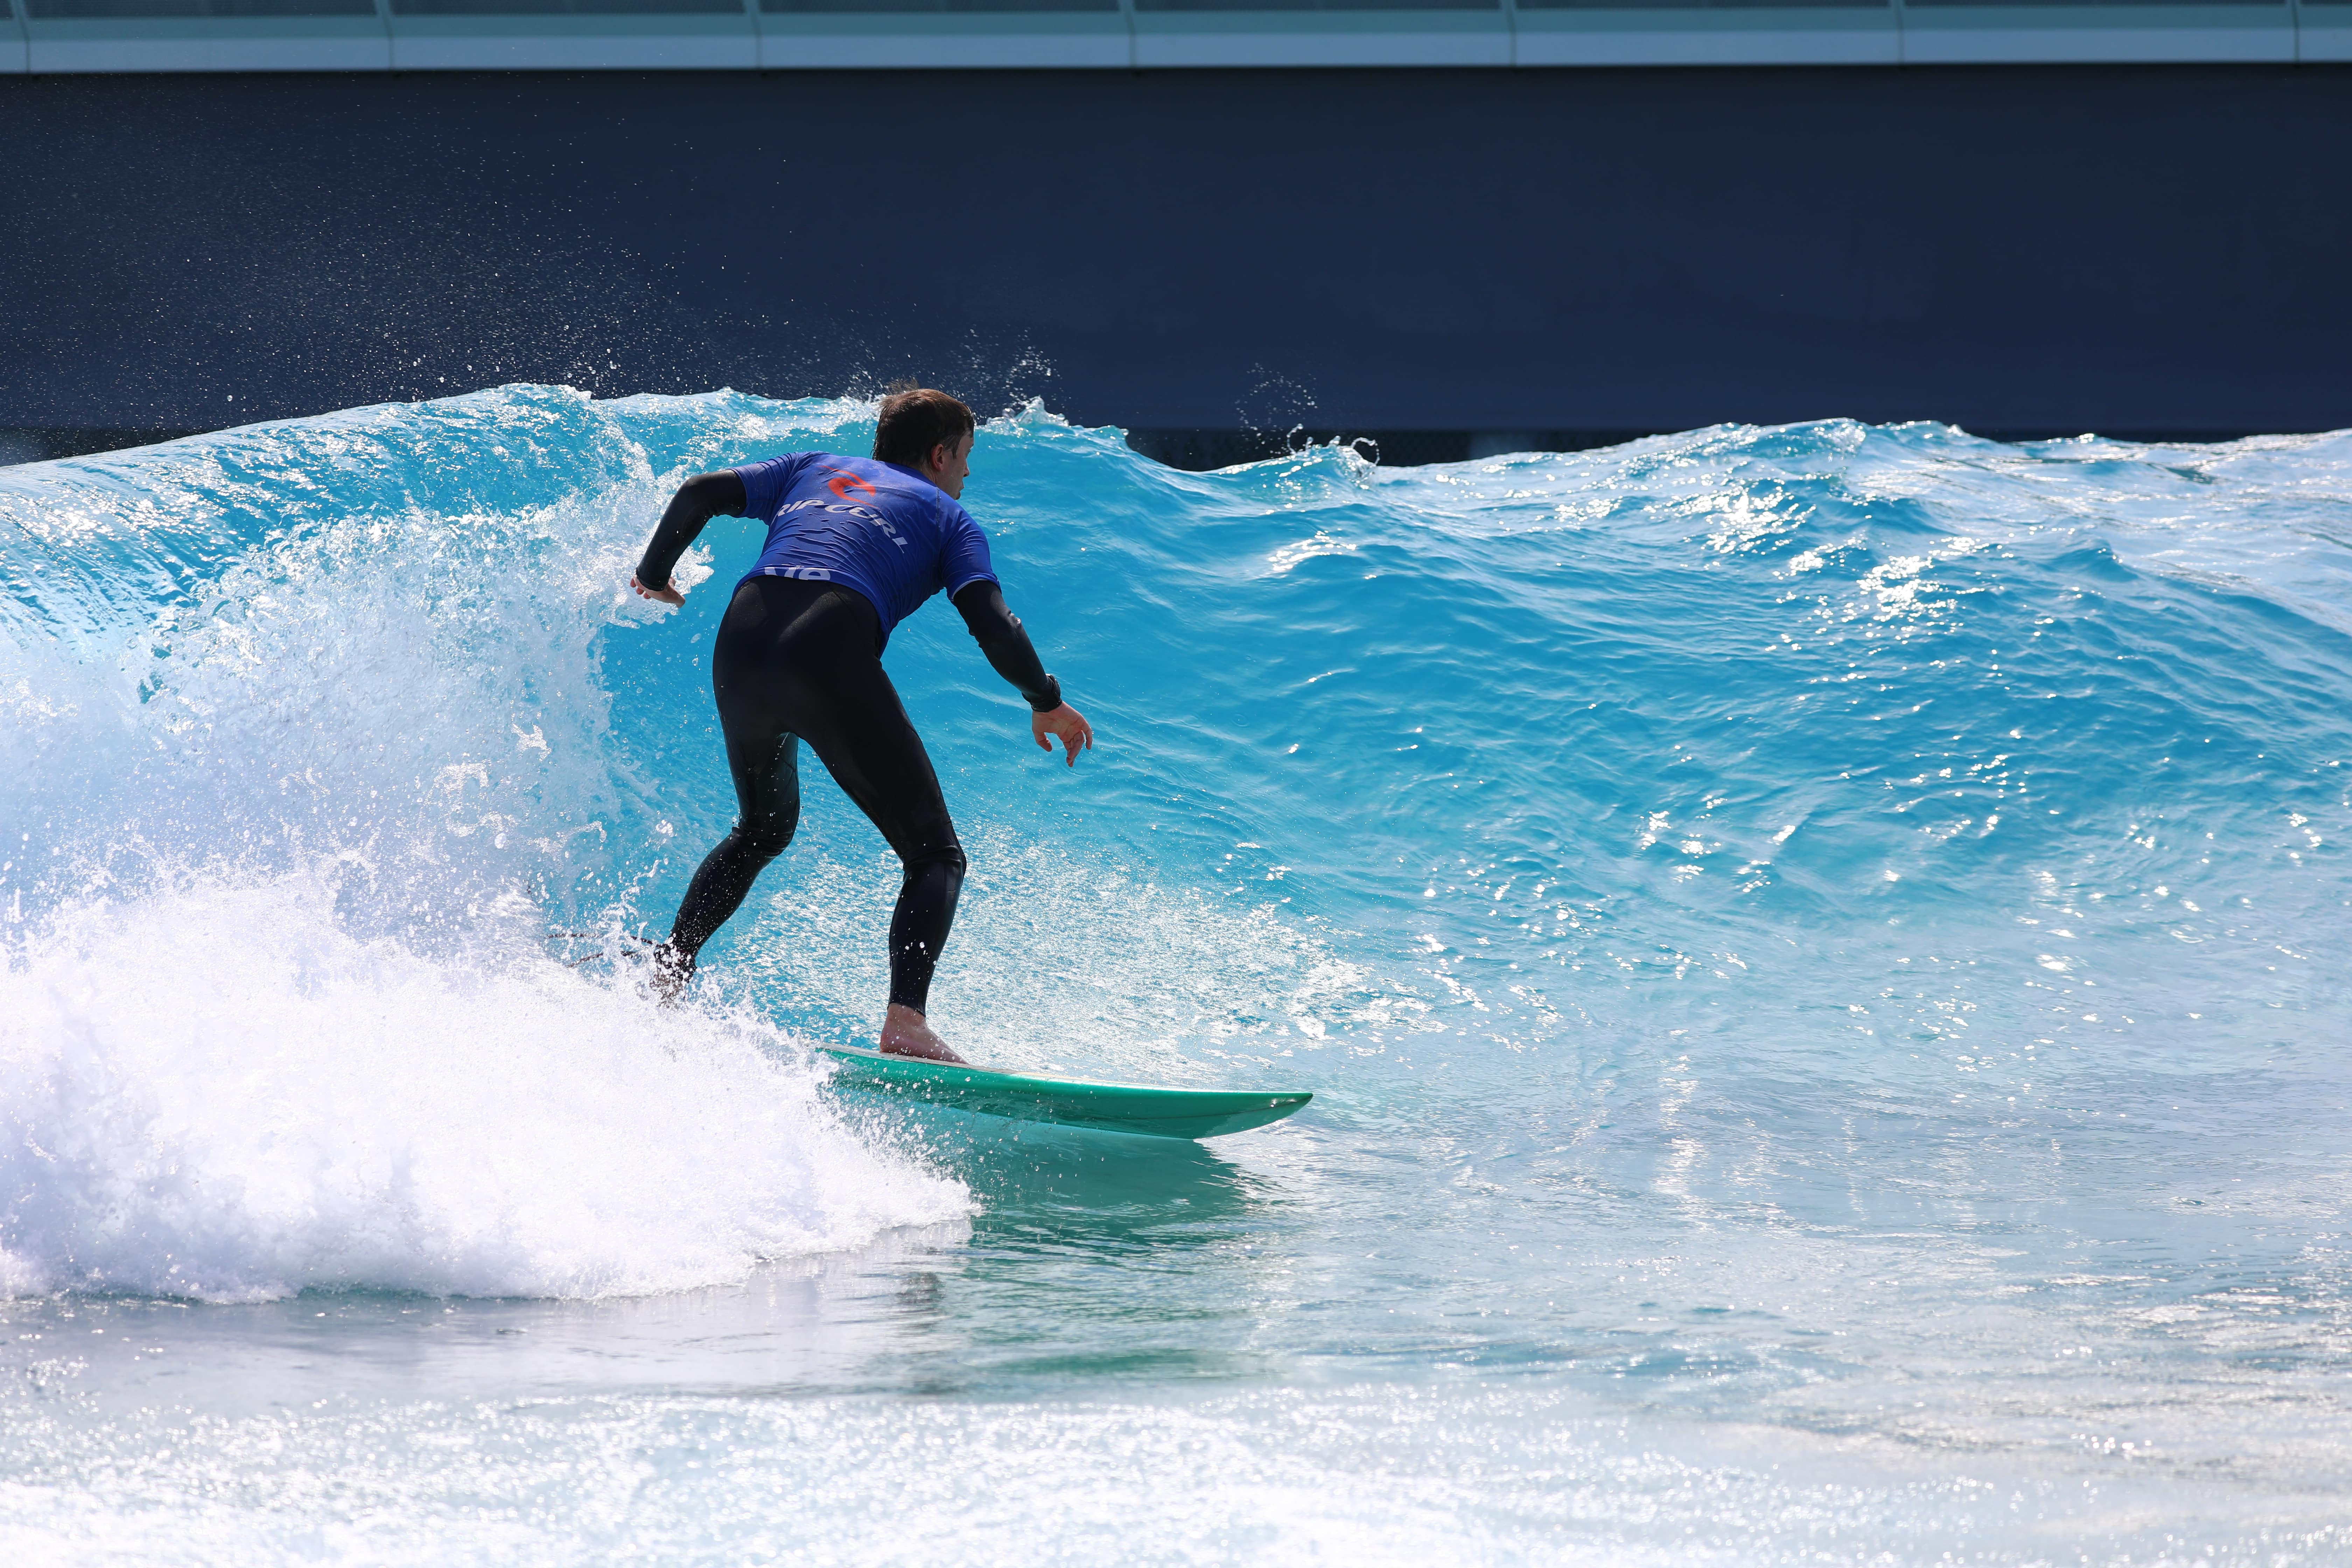 Can Wavepools Help Improve Your Surfing?